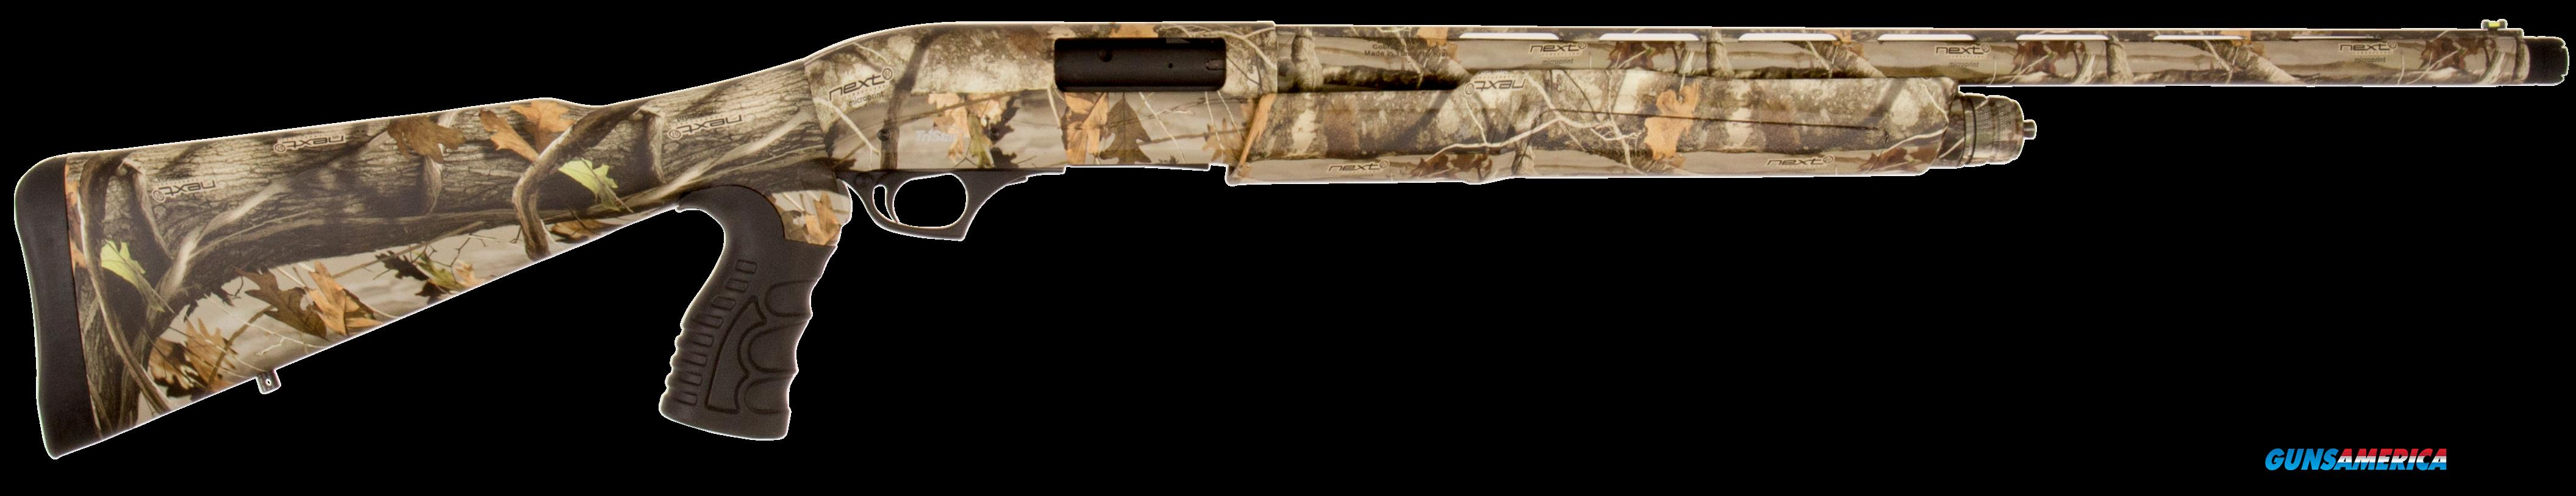 "TriStar 23106 Cobra Pump 12 Gauge 24"" 3"" 5+1 Next G-1 Vista Snythetic Next G-1 Camouflage  Guns > Shotguns > TU Misc Shotguns"